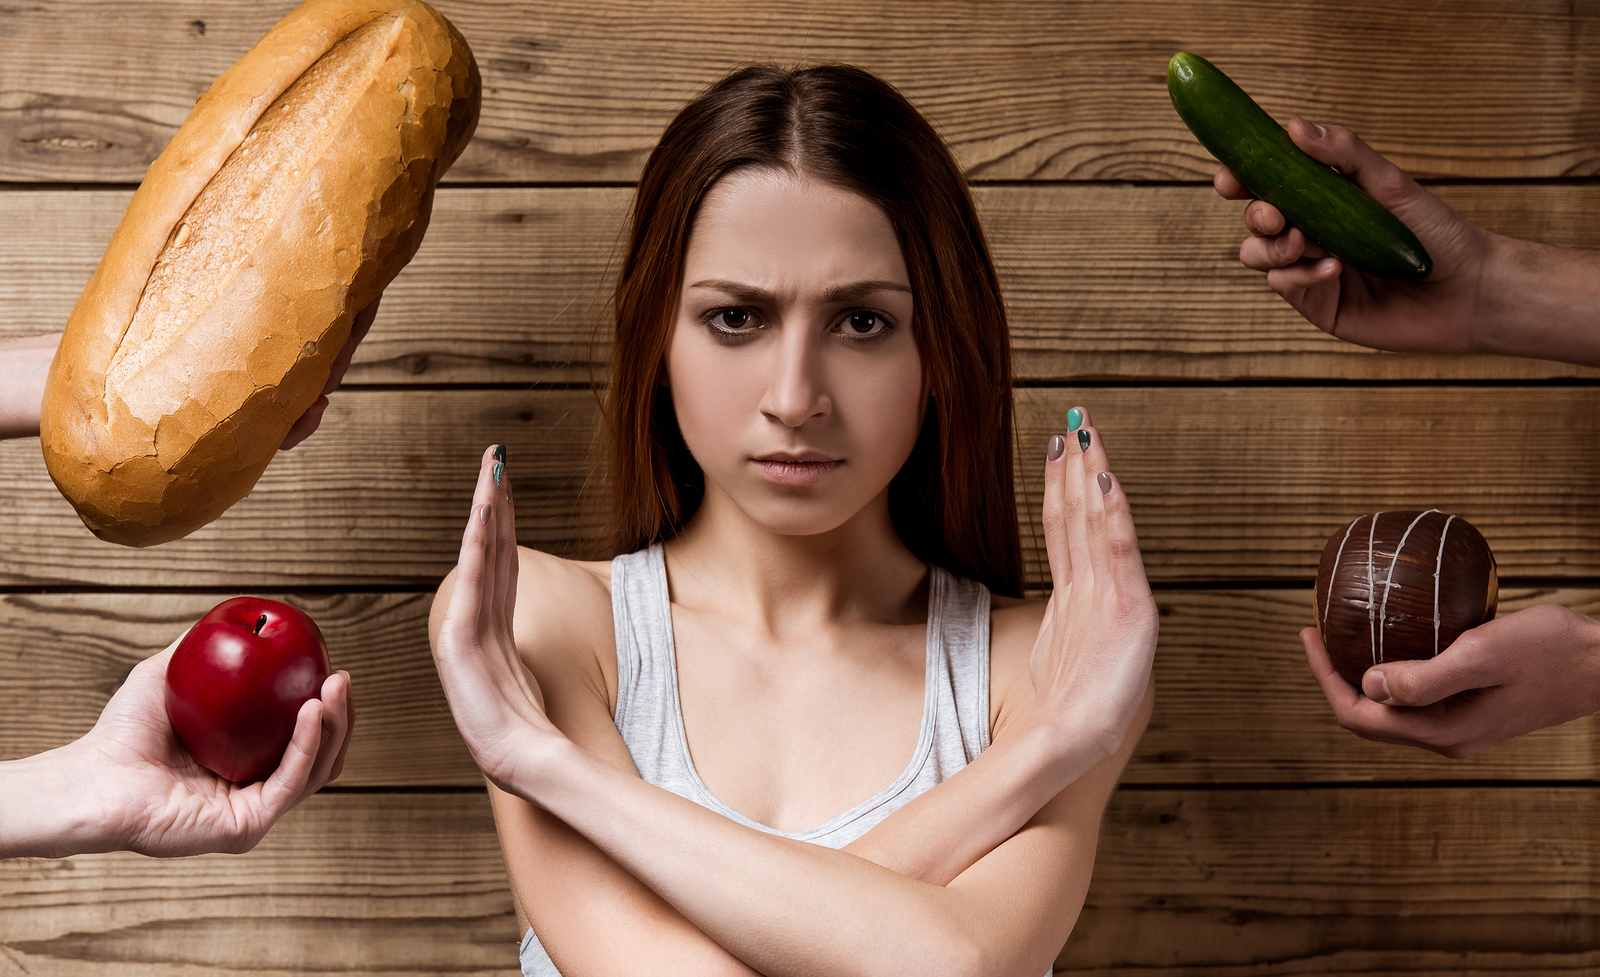 Thin girl in the center refuses food offered from different sides